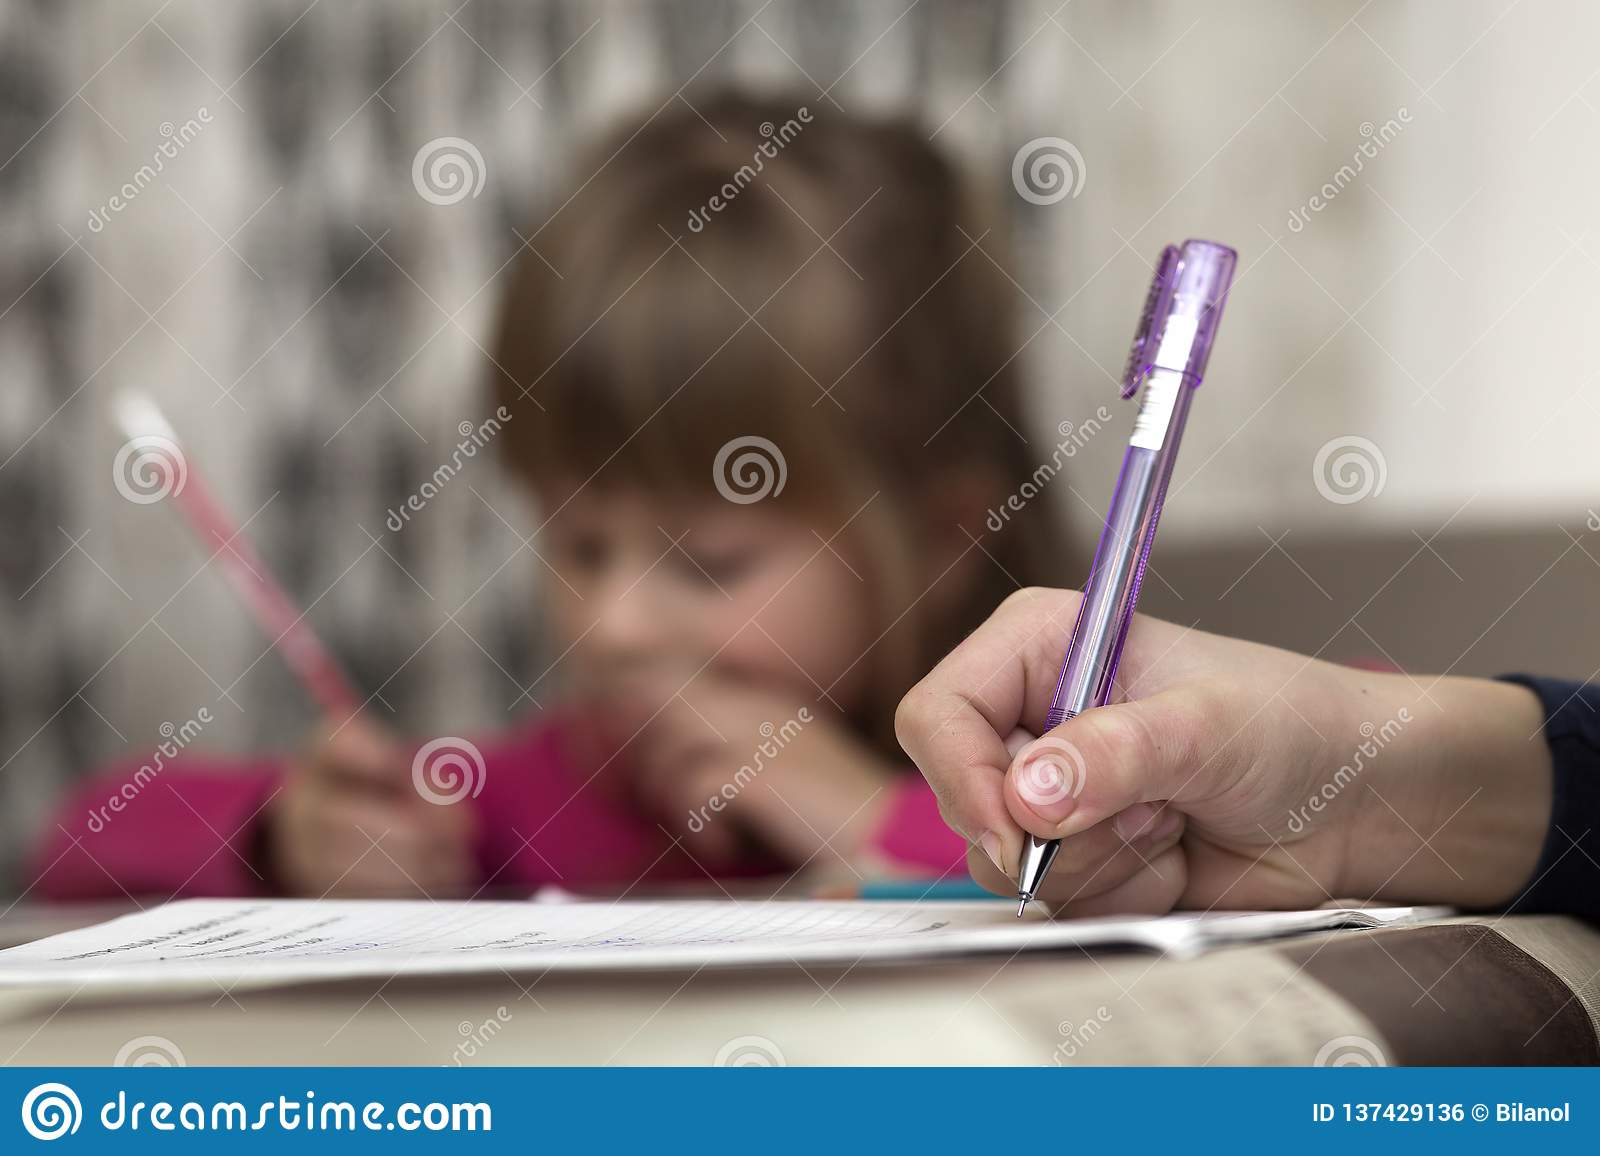 Portrait of cute pretty little serious child girl drawing with pencil on paper on blurred background. Art education, creativity,